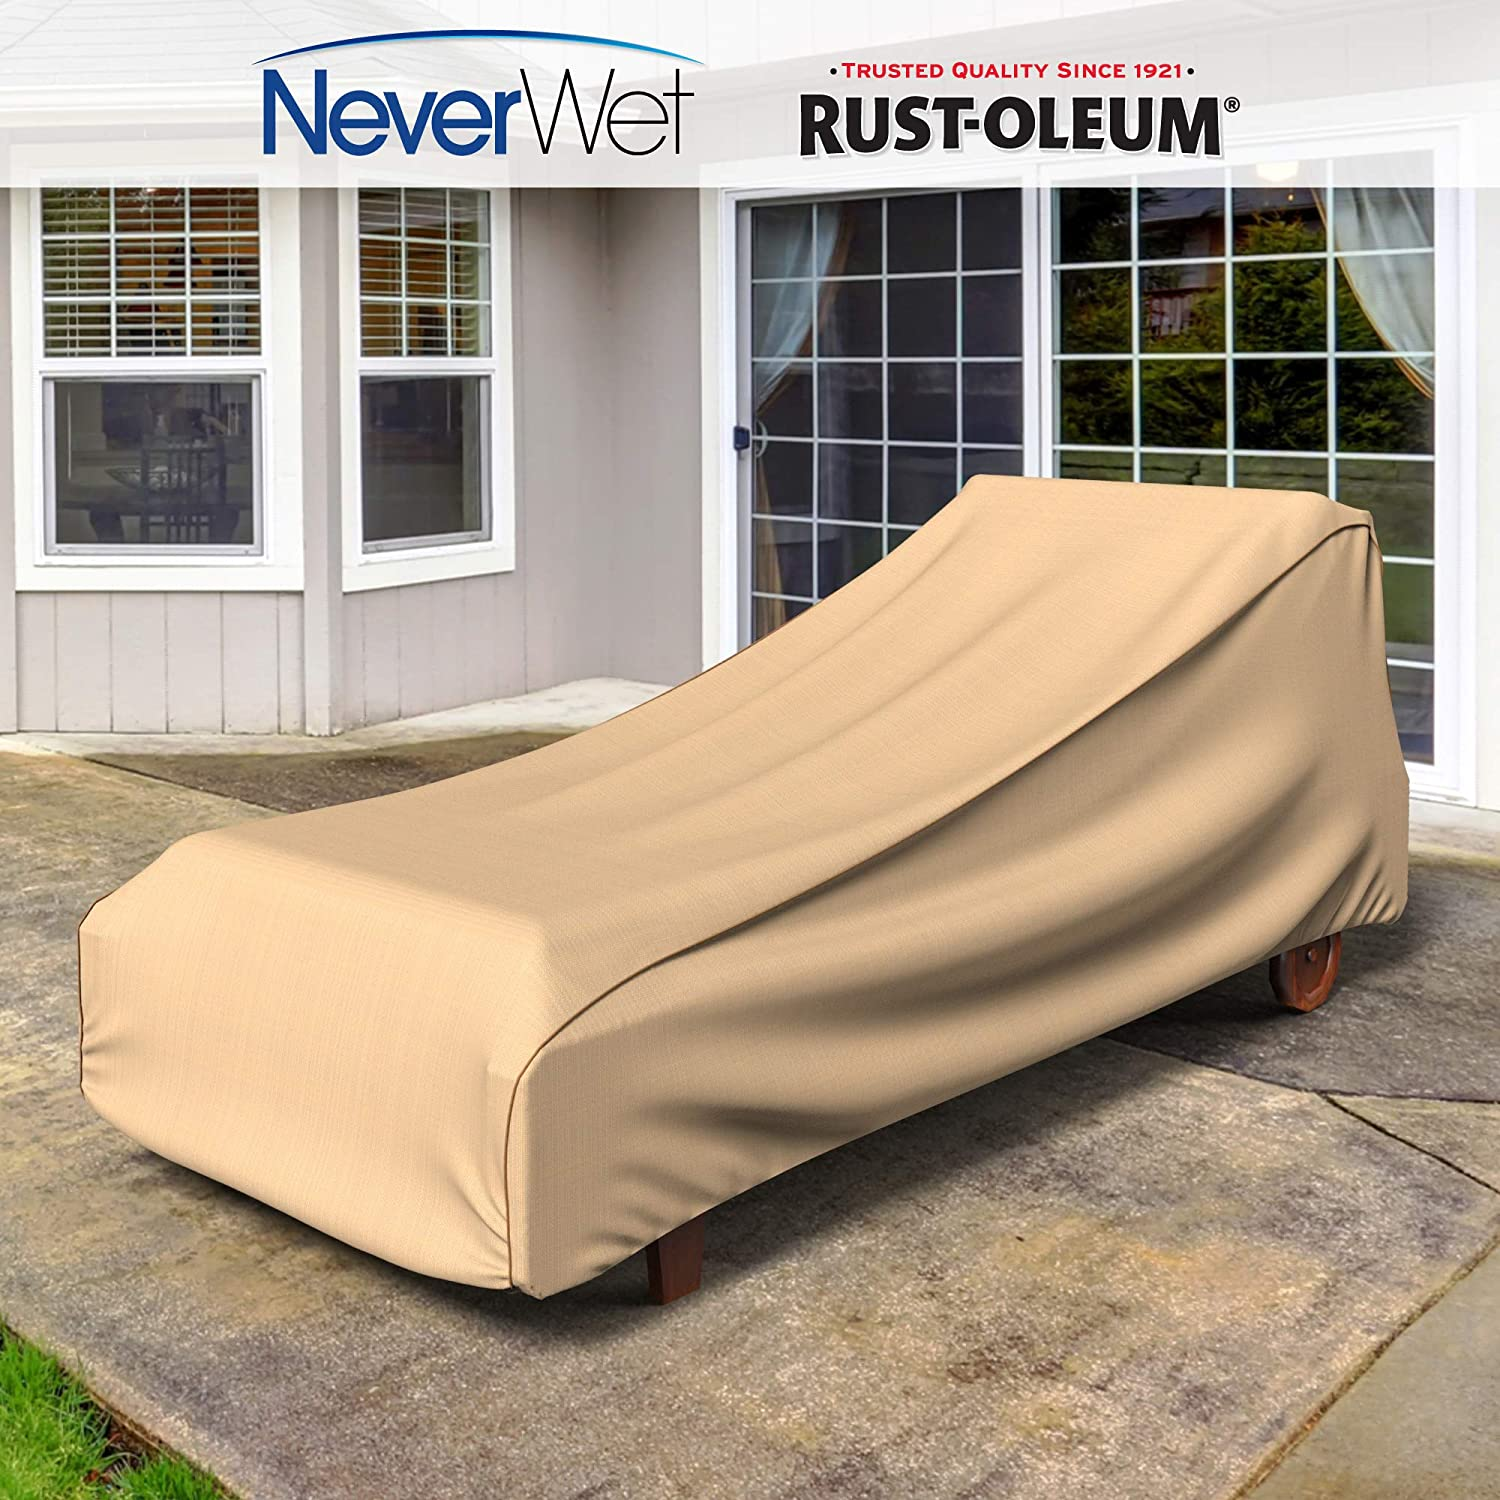 Black Ivory NeverWet Signature Patio Chaise Lounge Cover Large P2W01PMNW2